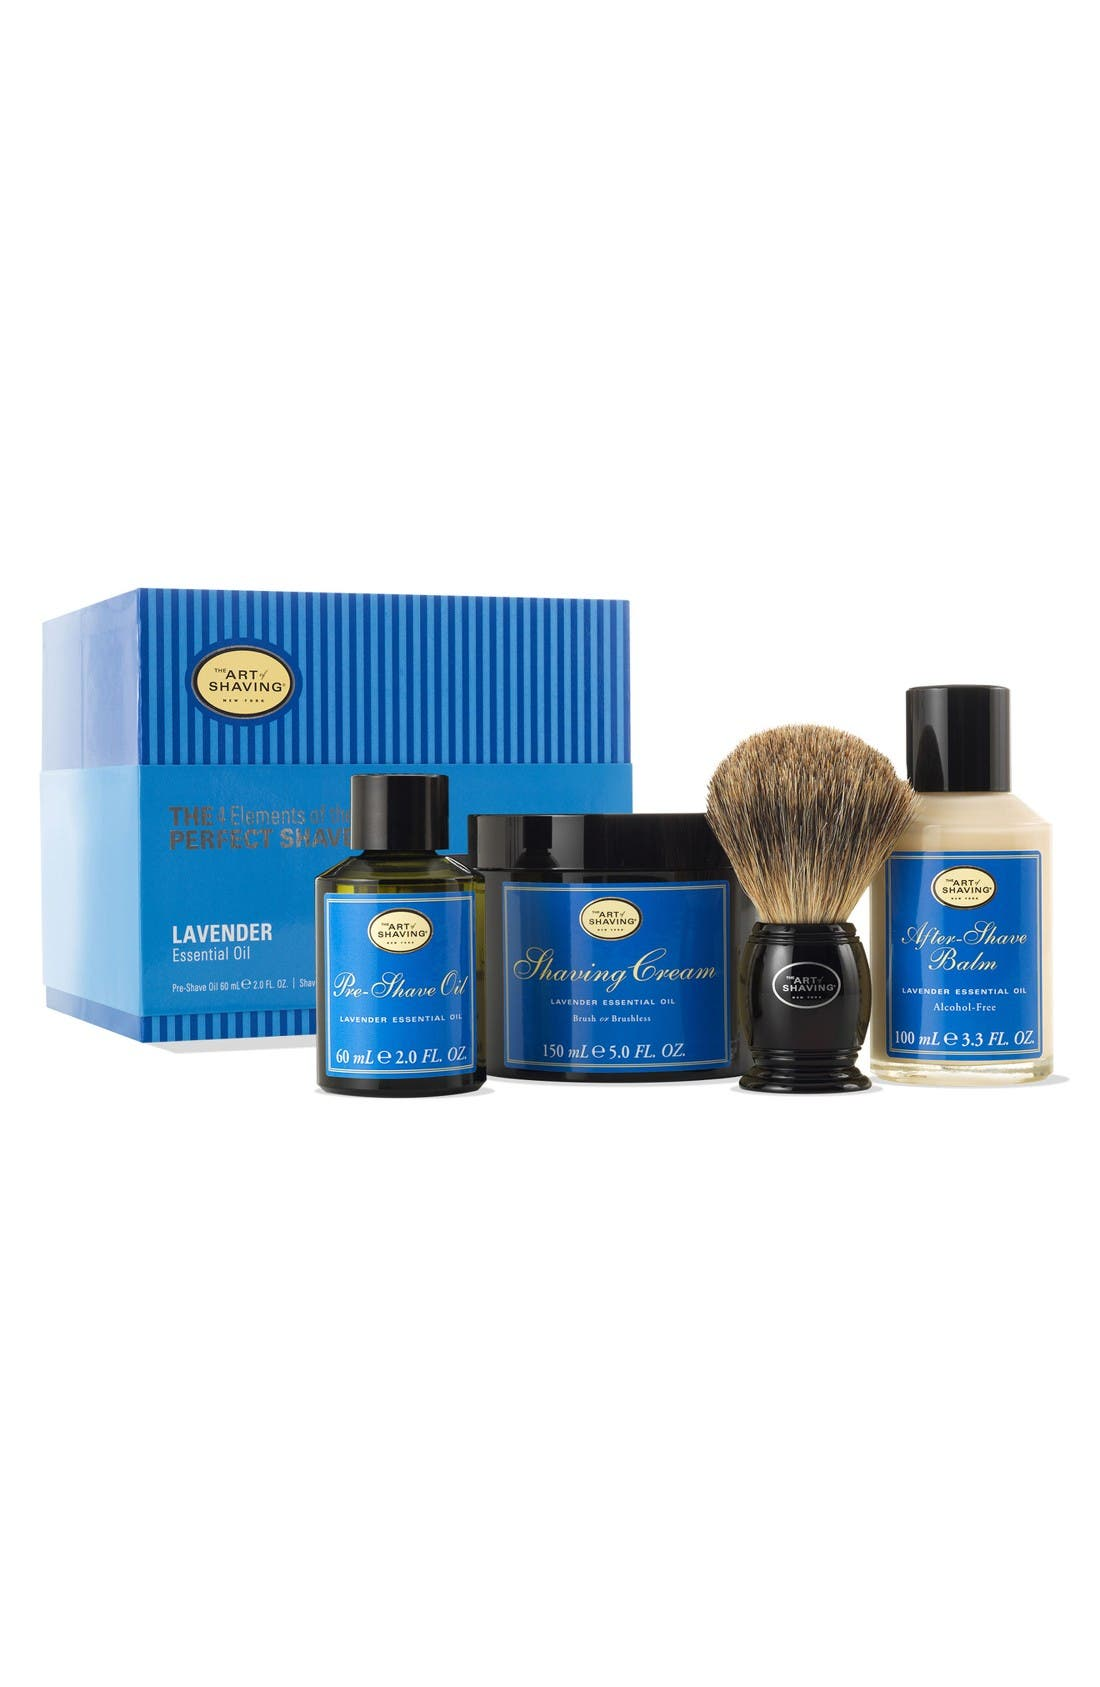 The Art of Shaving® The 4 Elements of the Perfect Shave® Kit ($137 Value)